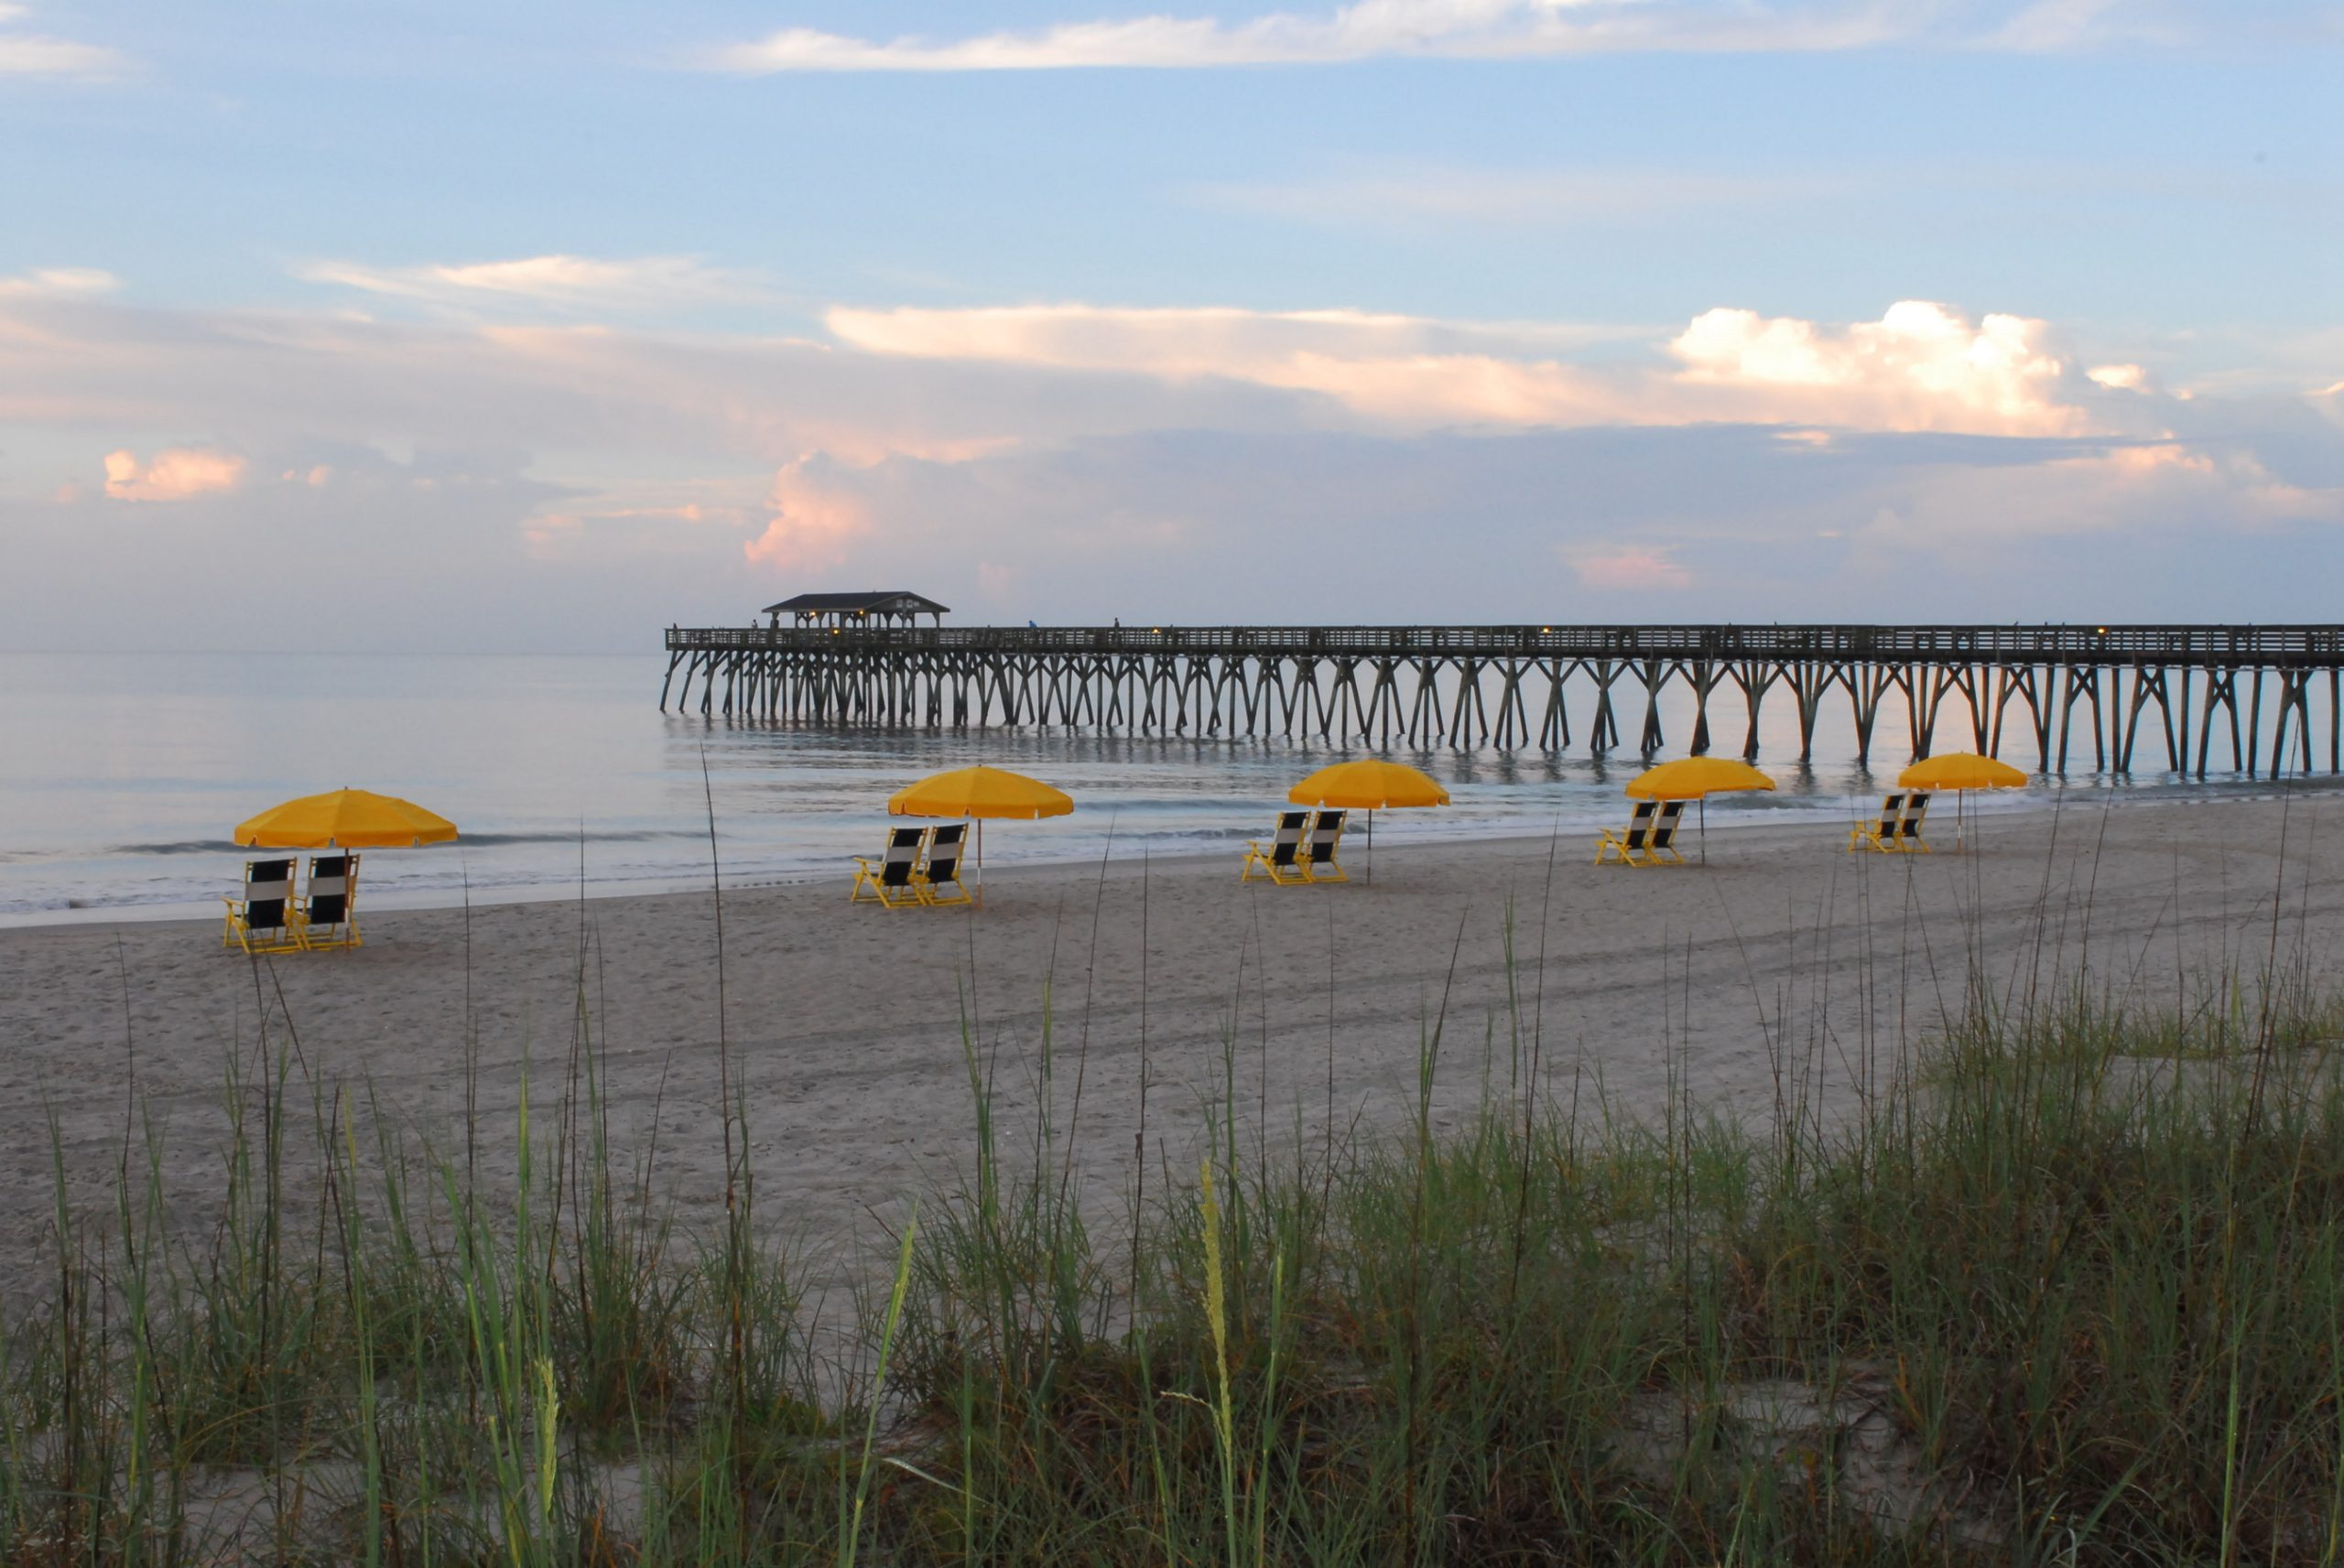 Escape the cold and forget about winter as you enjoy a getaway along the 60-miles of beautiful beaches in Myrtle Beach, South Carolina.